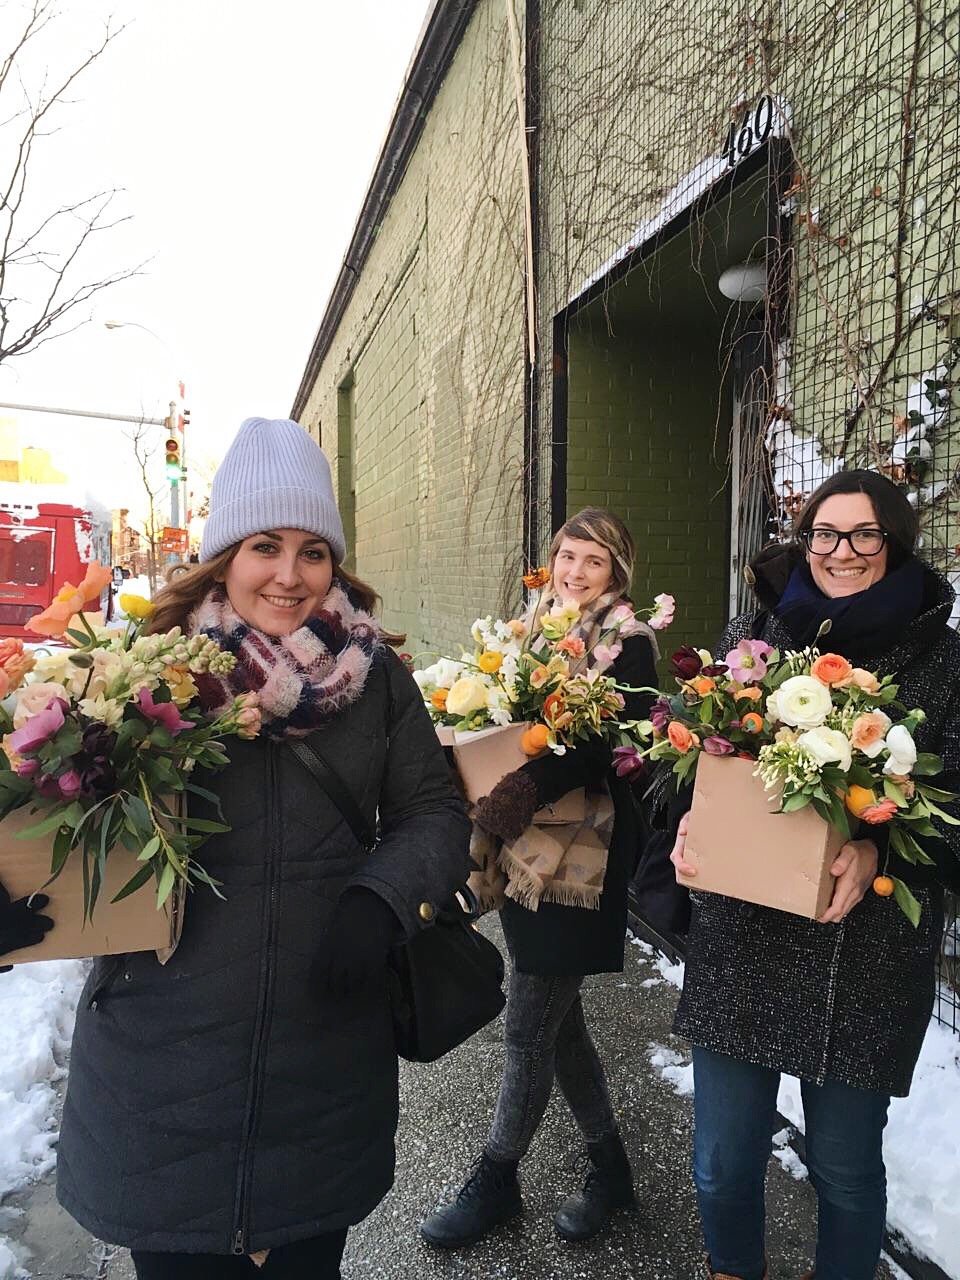 Wild Green Yonder | Little Flower School Brooklyn | Winter Citrus Class at Sky Gallery